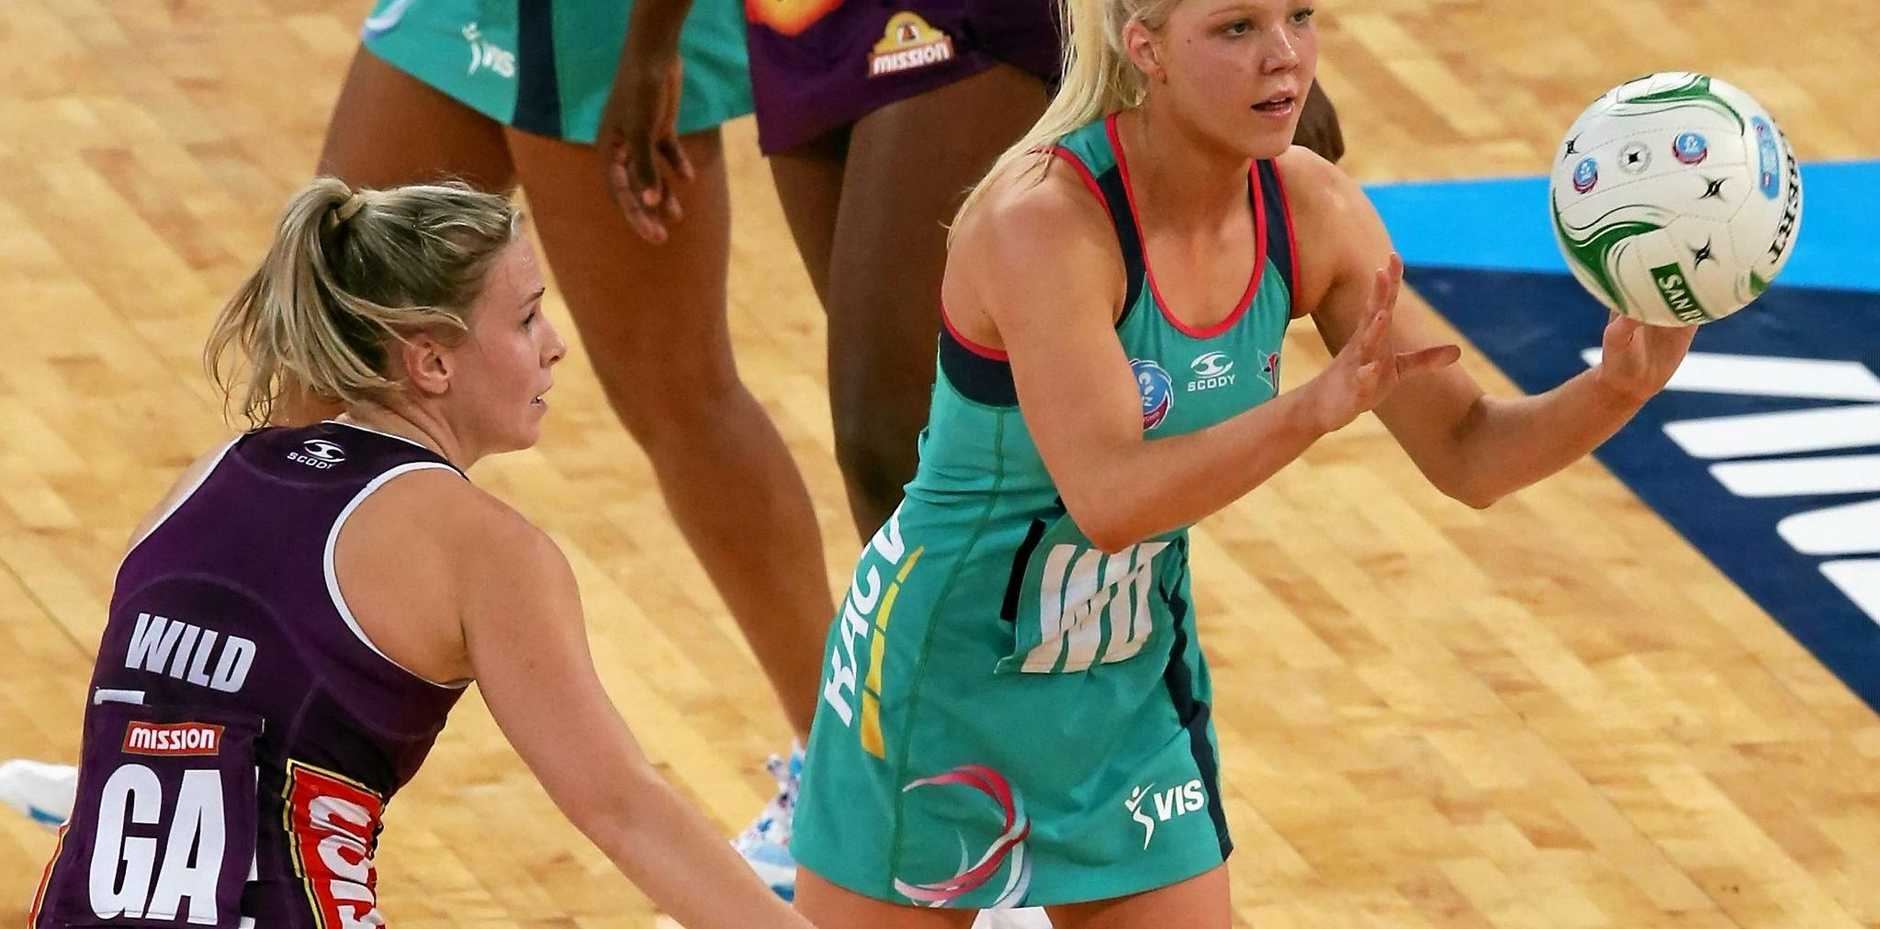 REVENGE: Melbourne Vixens captain Kate Moloney (passing the ball).